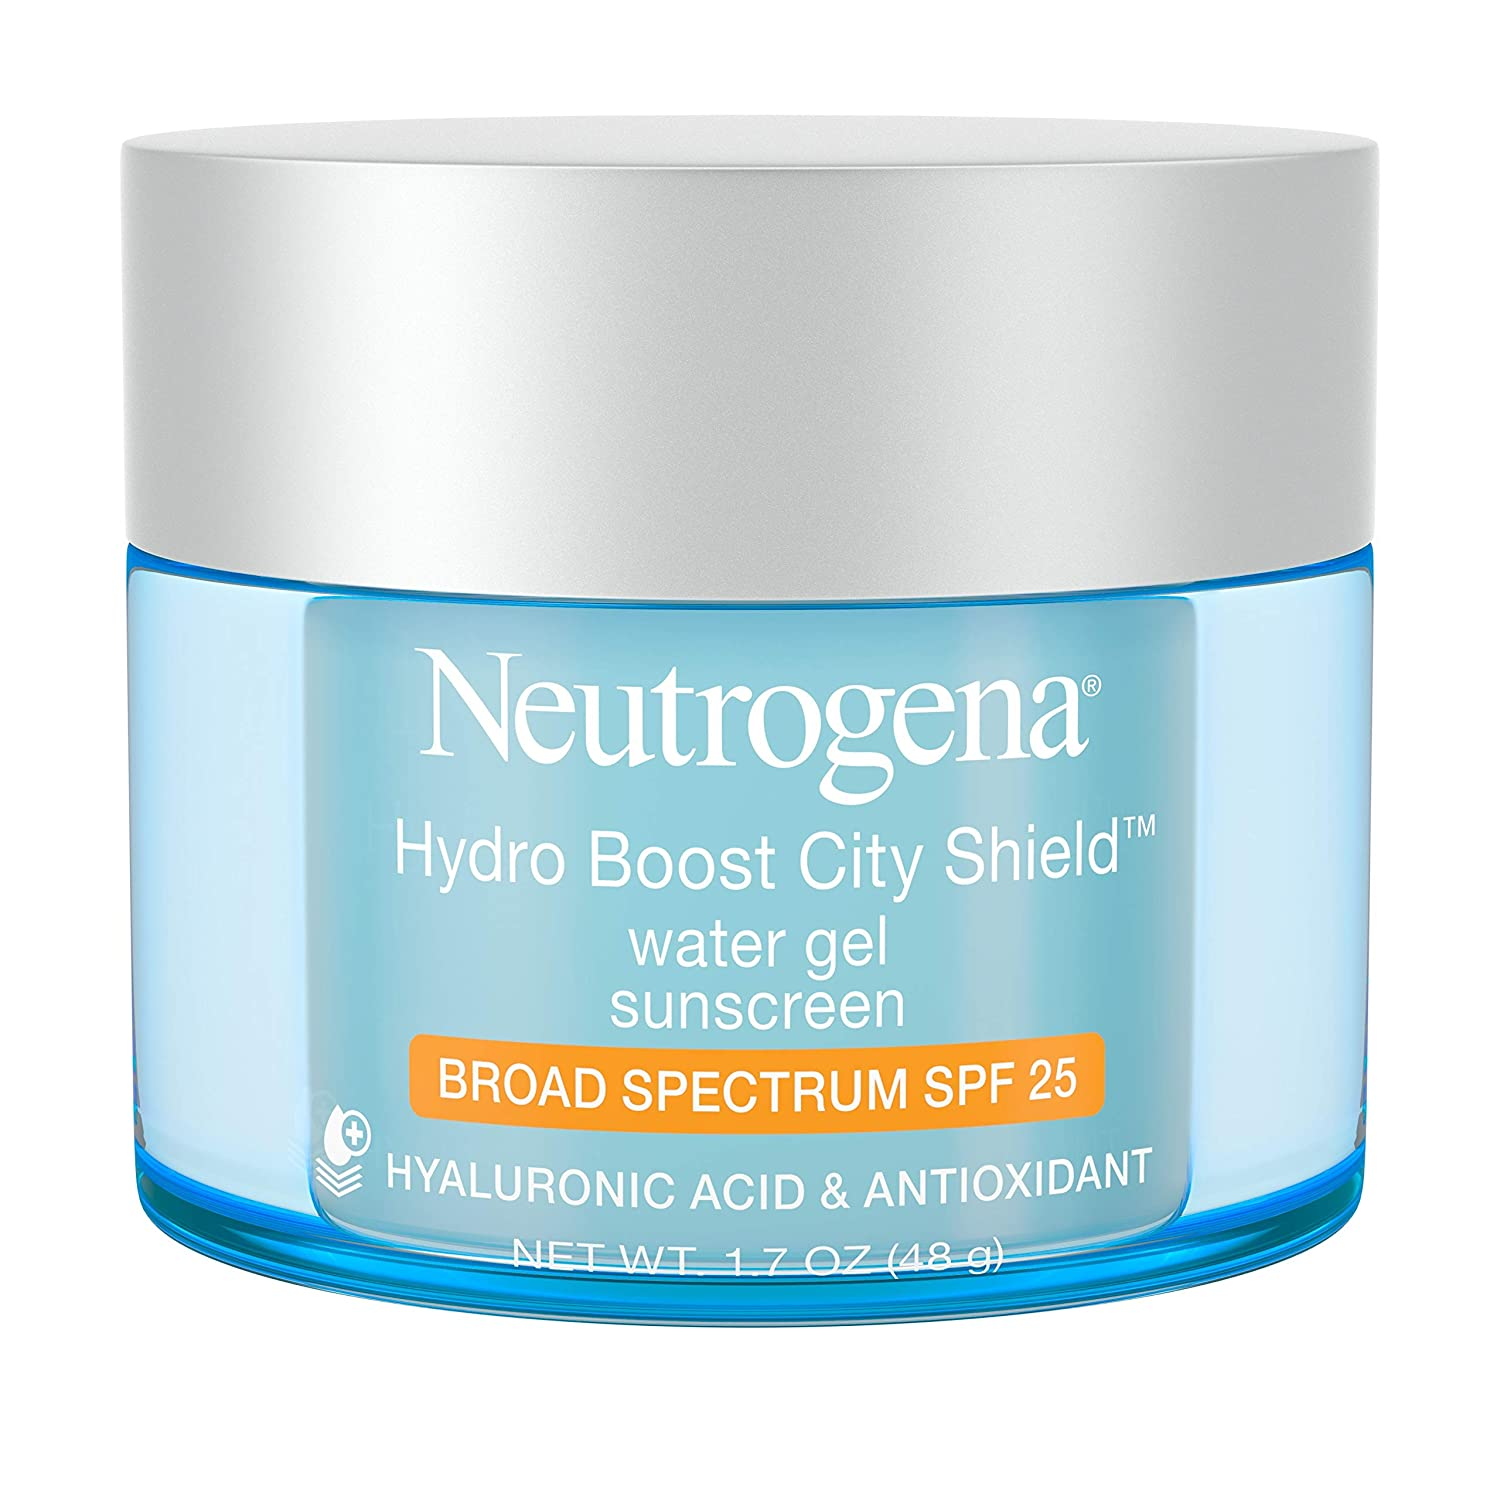 Neutrogena Hydro Boost City Shield Water Gel with Hydrating Hyaluronic Acid, Antioxidants, and Broad Spectrum SPF 25 Sunscreen, Oil-Free, Alcohol-Free, Non-Comedogenic, 1.7 oz